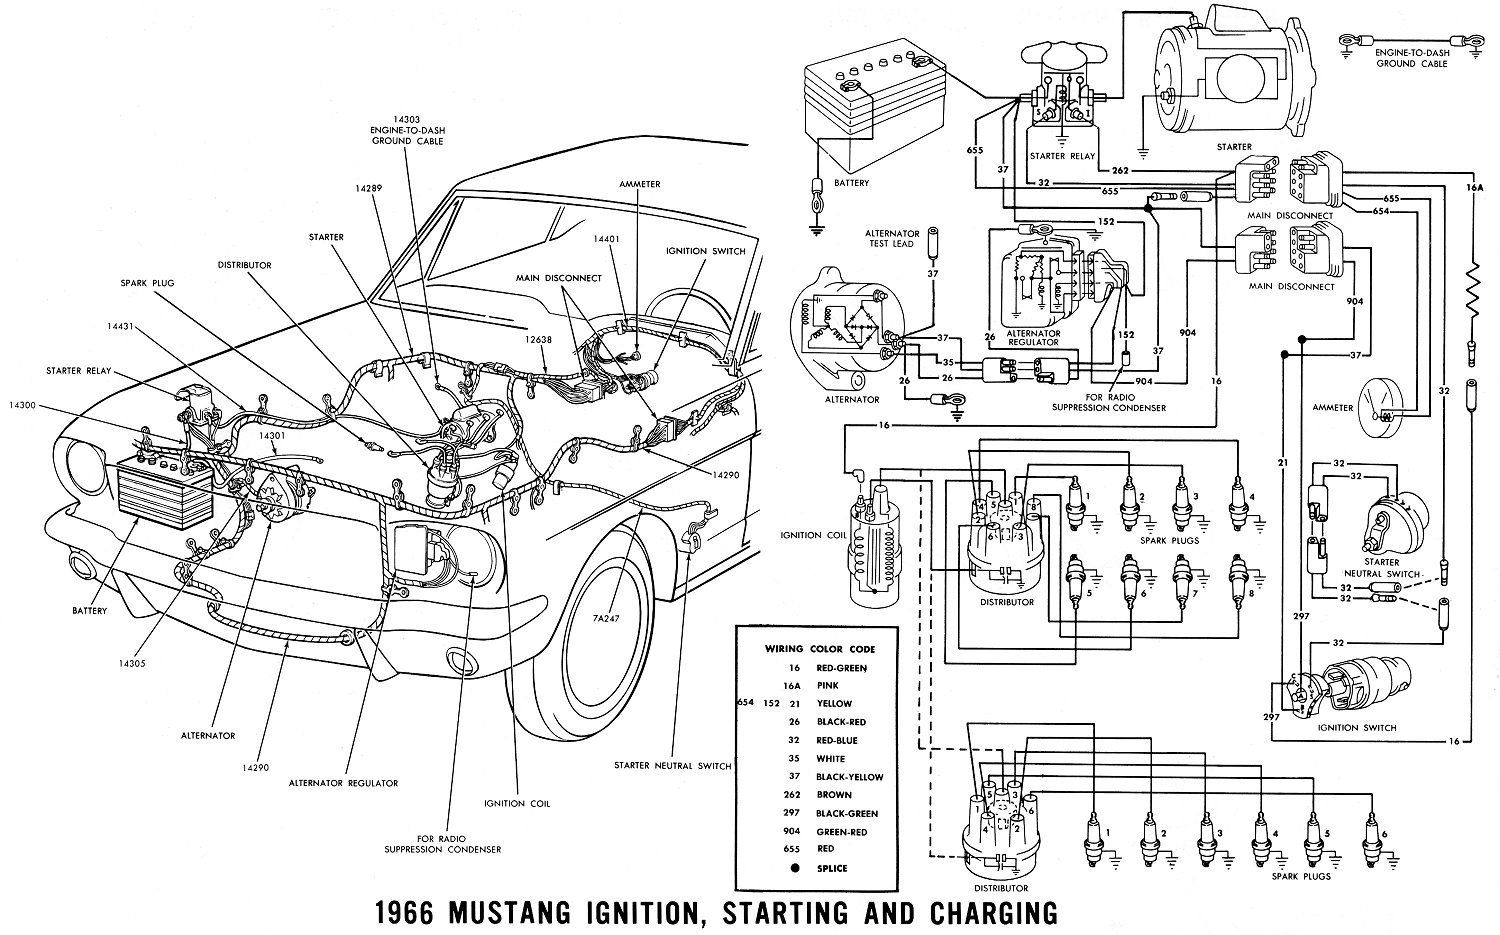 wiring a ford 289 v8 - wiring diagram schematic leader-guest -  leader-guest.aliceviola.it  aliceviola.it